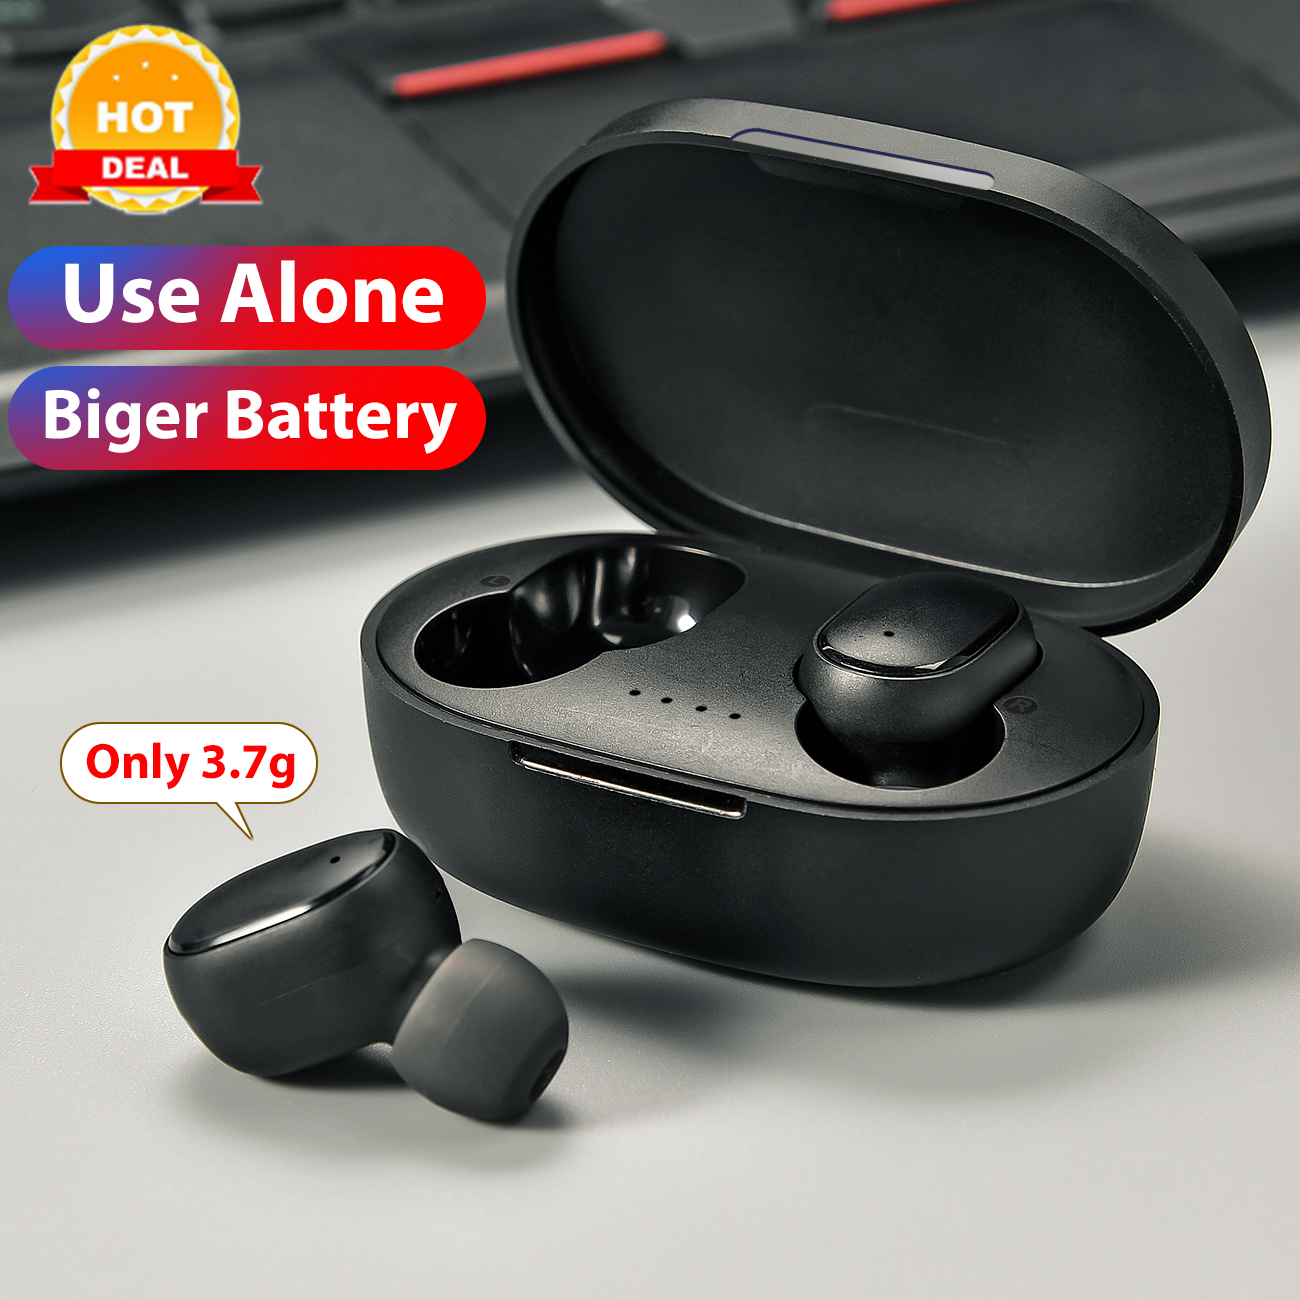 In-ohr Wahre Wireless Stereo Ohrhörer PK Redmi Airdots Drahtlose Kopfhörer Voice control Bluetooth 5,0 Bass Headsets Noise reduktion